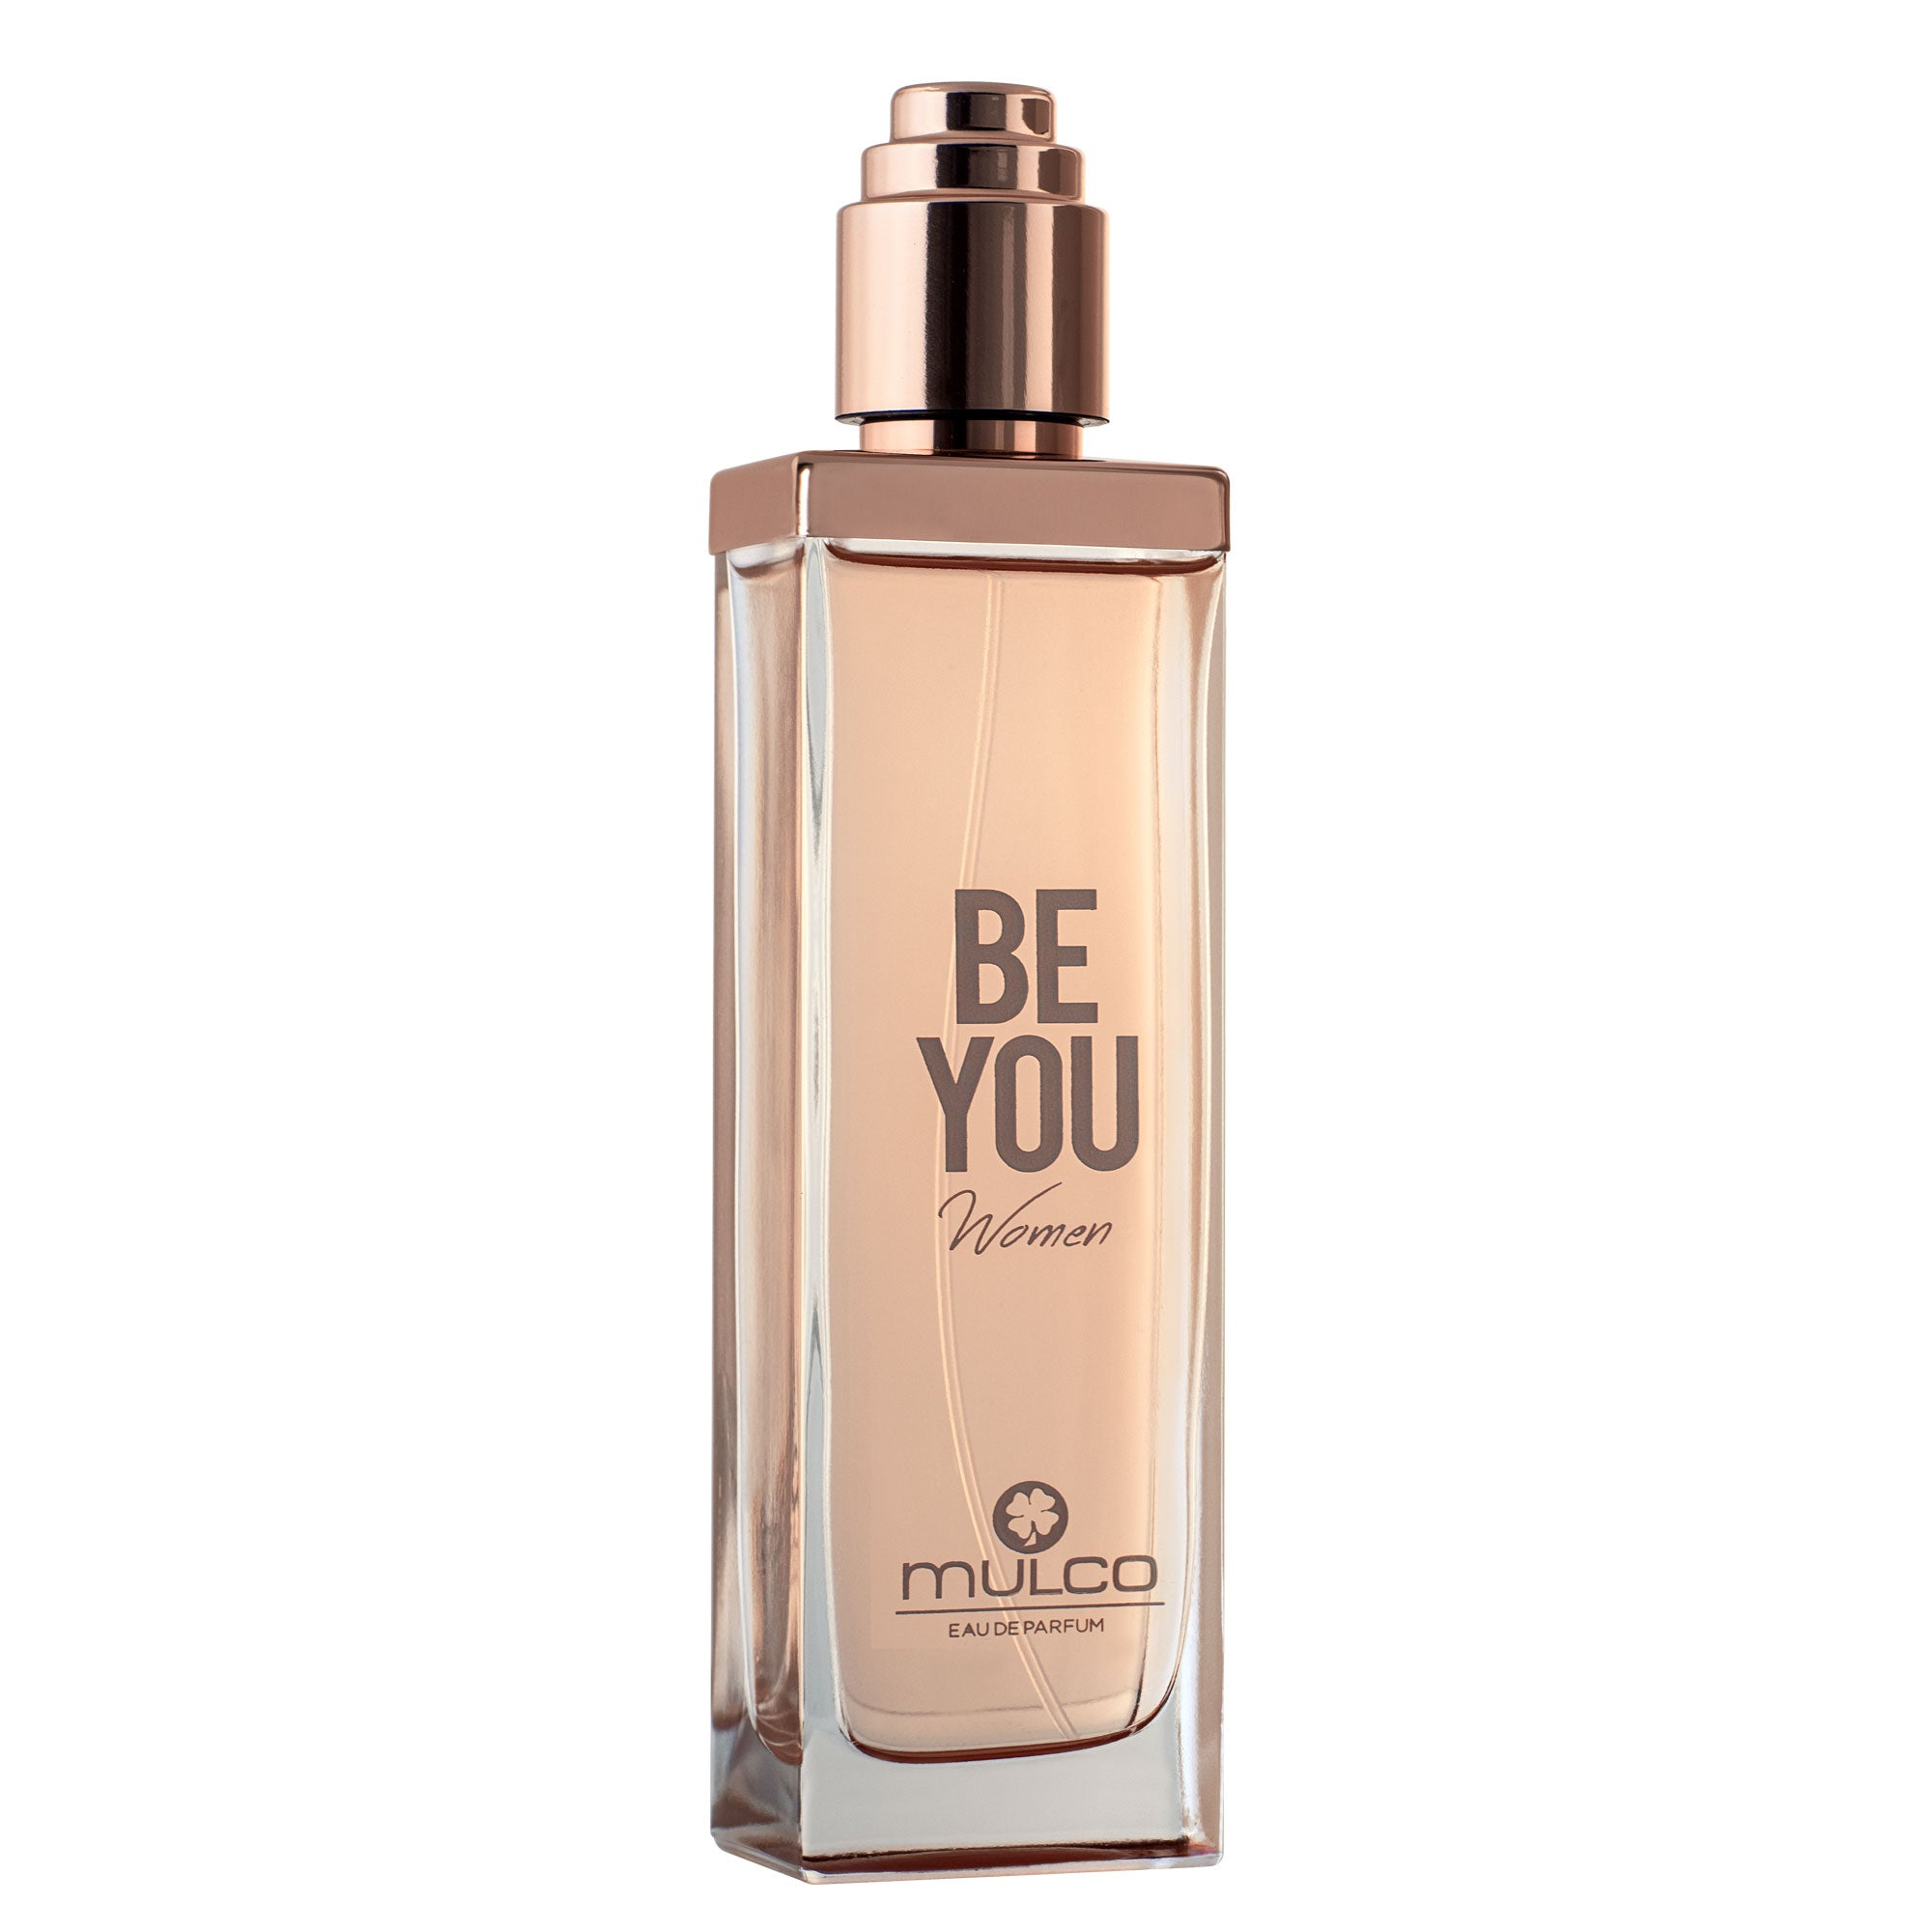 Be You Women Eau De Parfum 100 ml